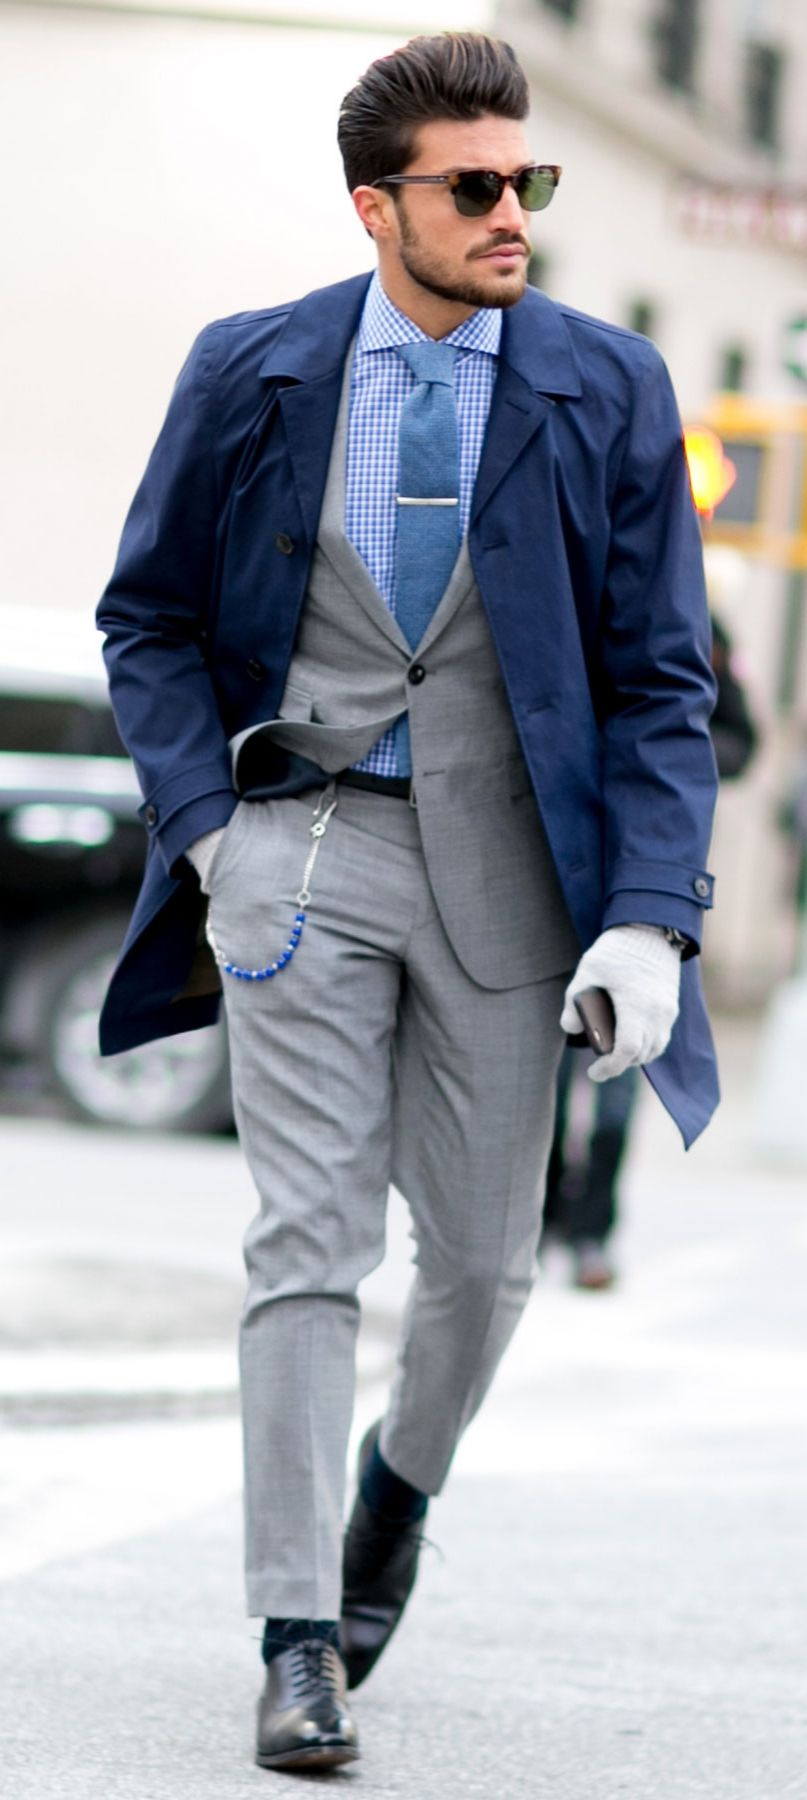 Invest in a gray suit. It'll transition from Winter to